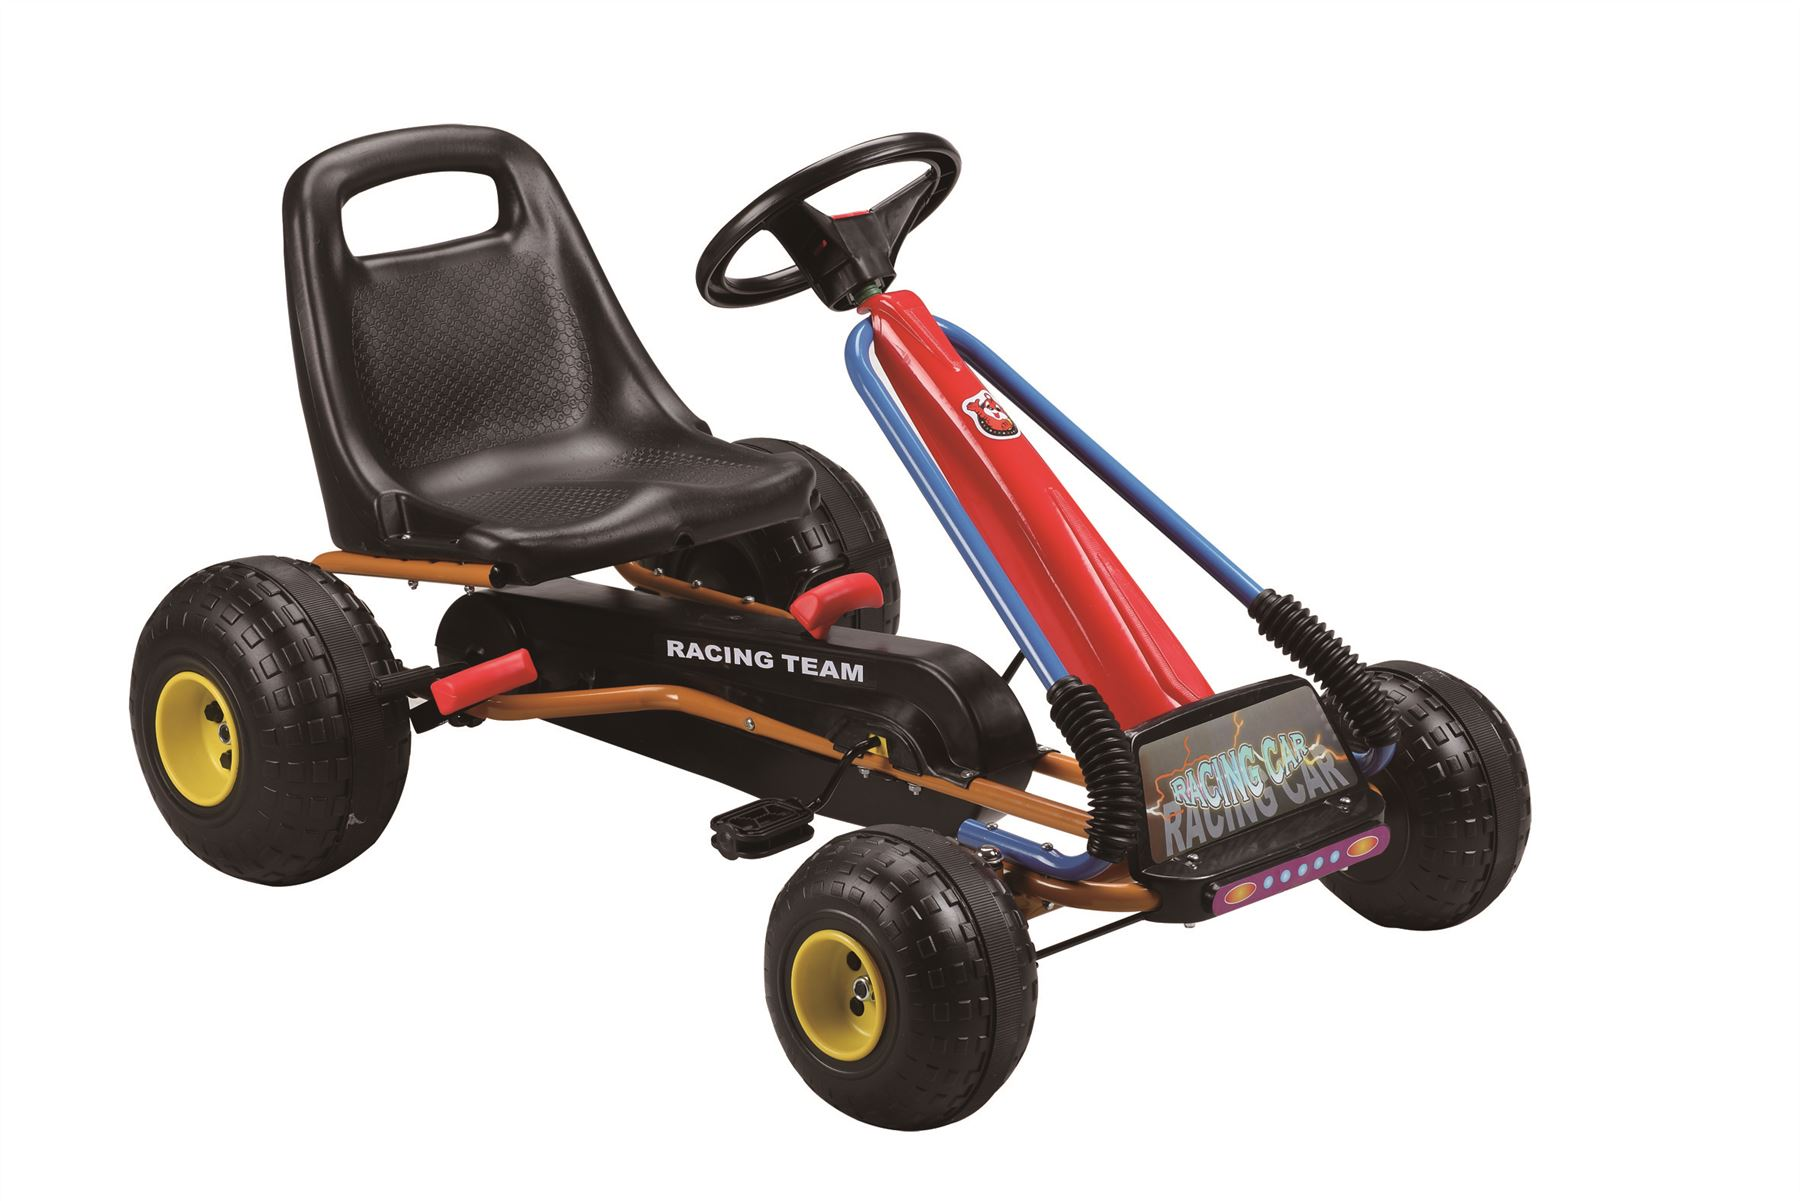 CHILDRENS KIDS PEDAL GO KART CART WITH OVERSIZE WHEELS AND